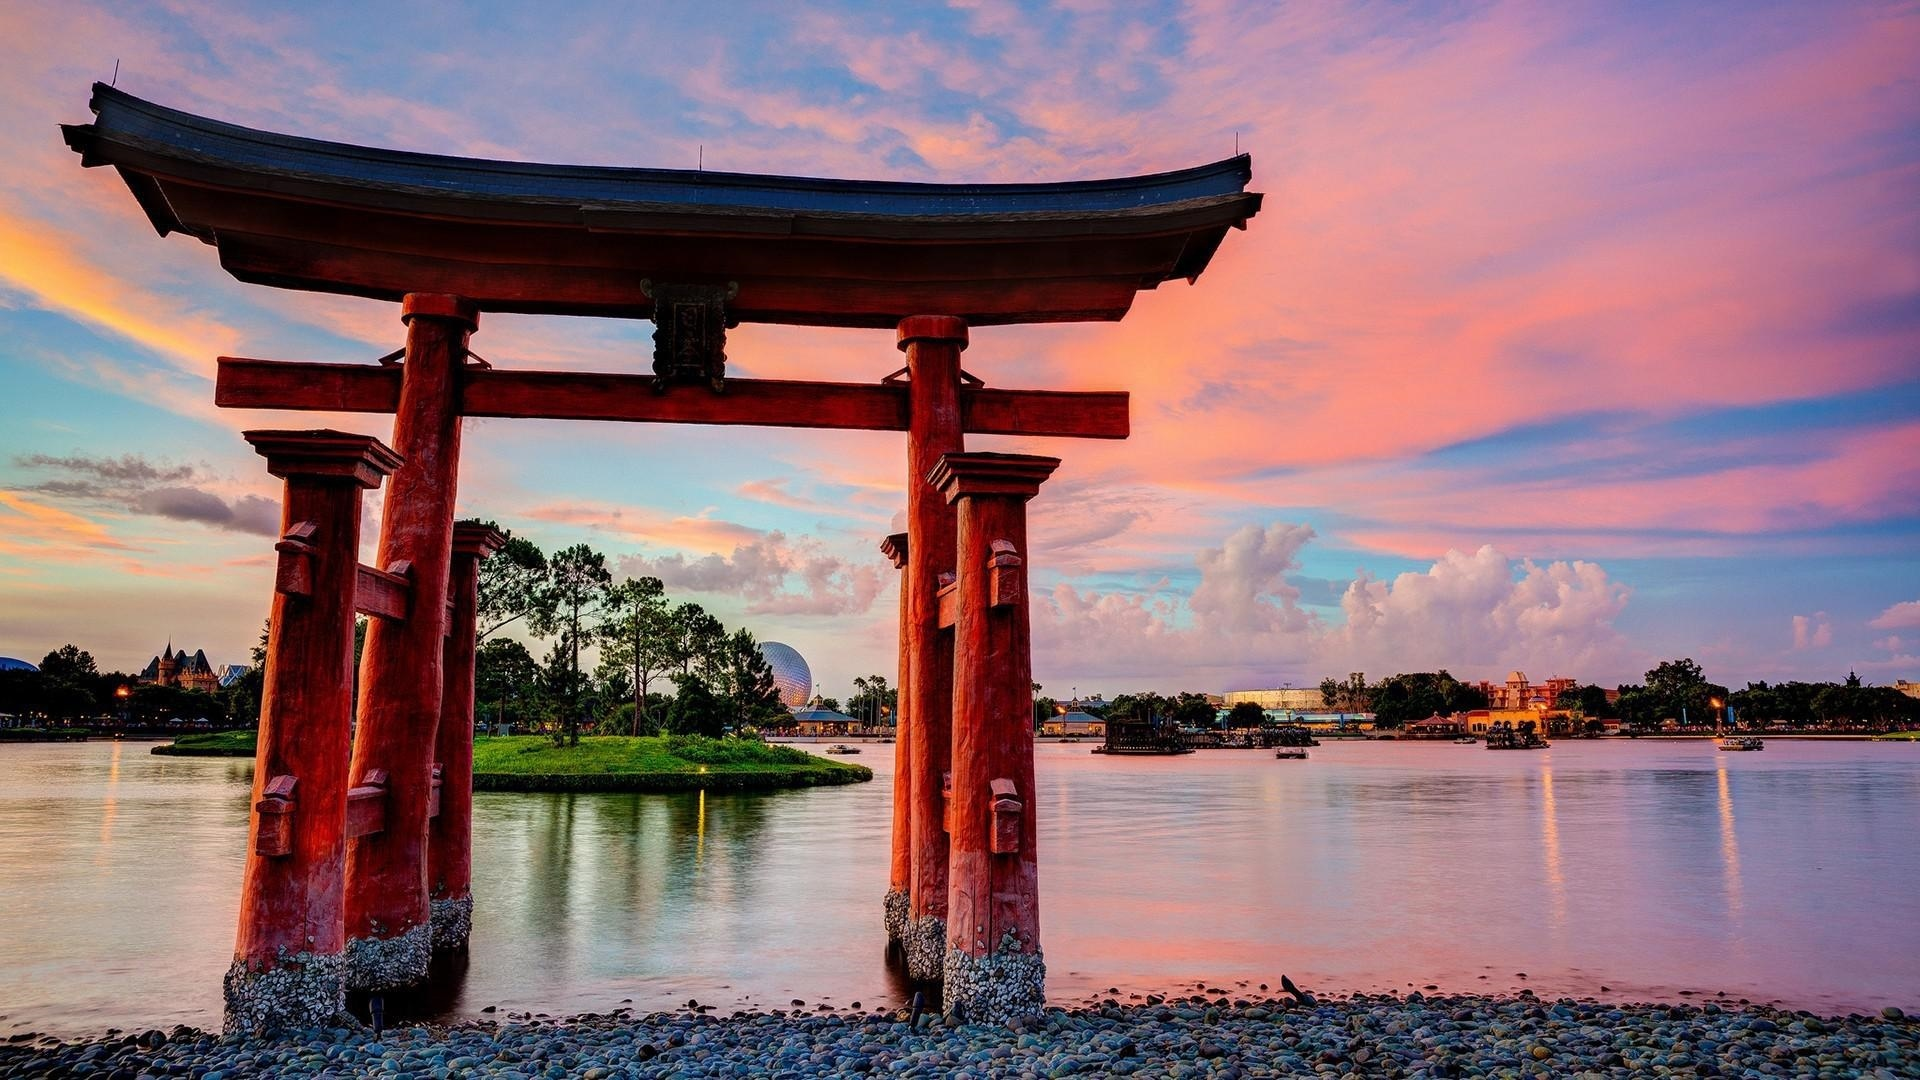 Torii Gate desktop wallpaper hd